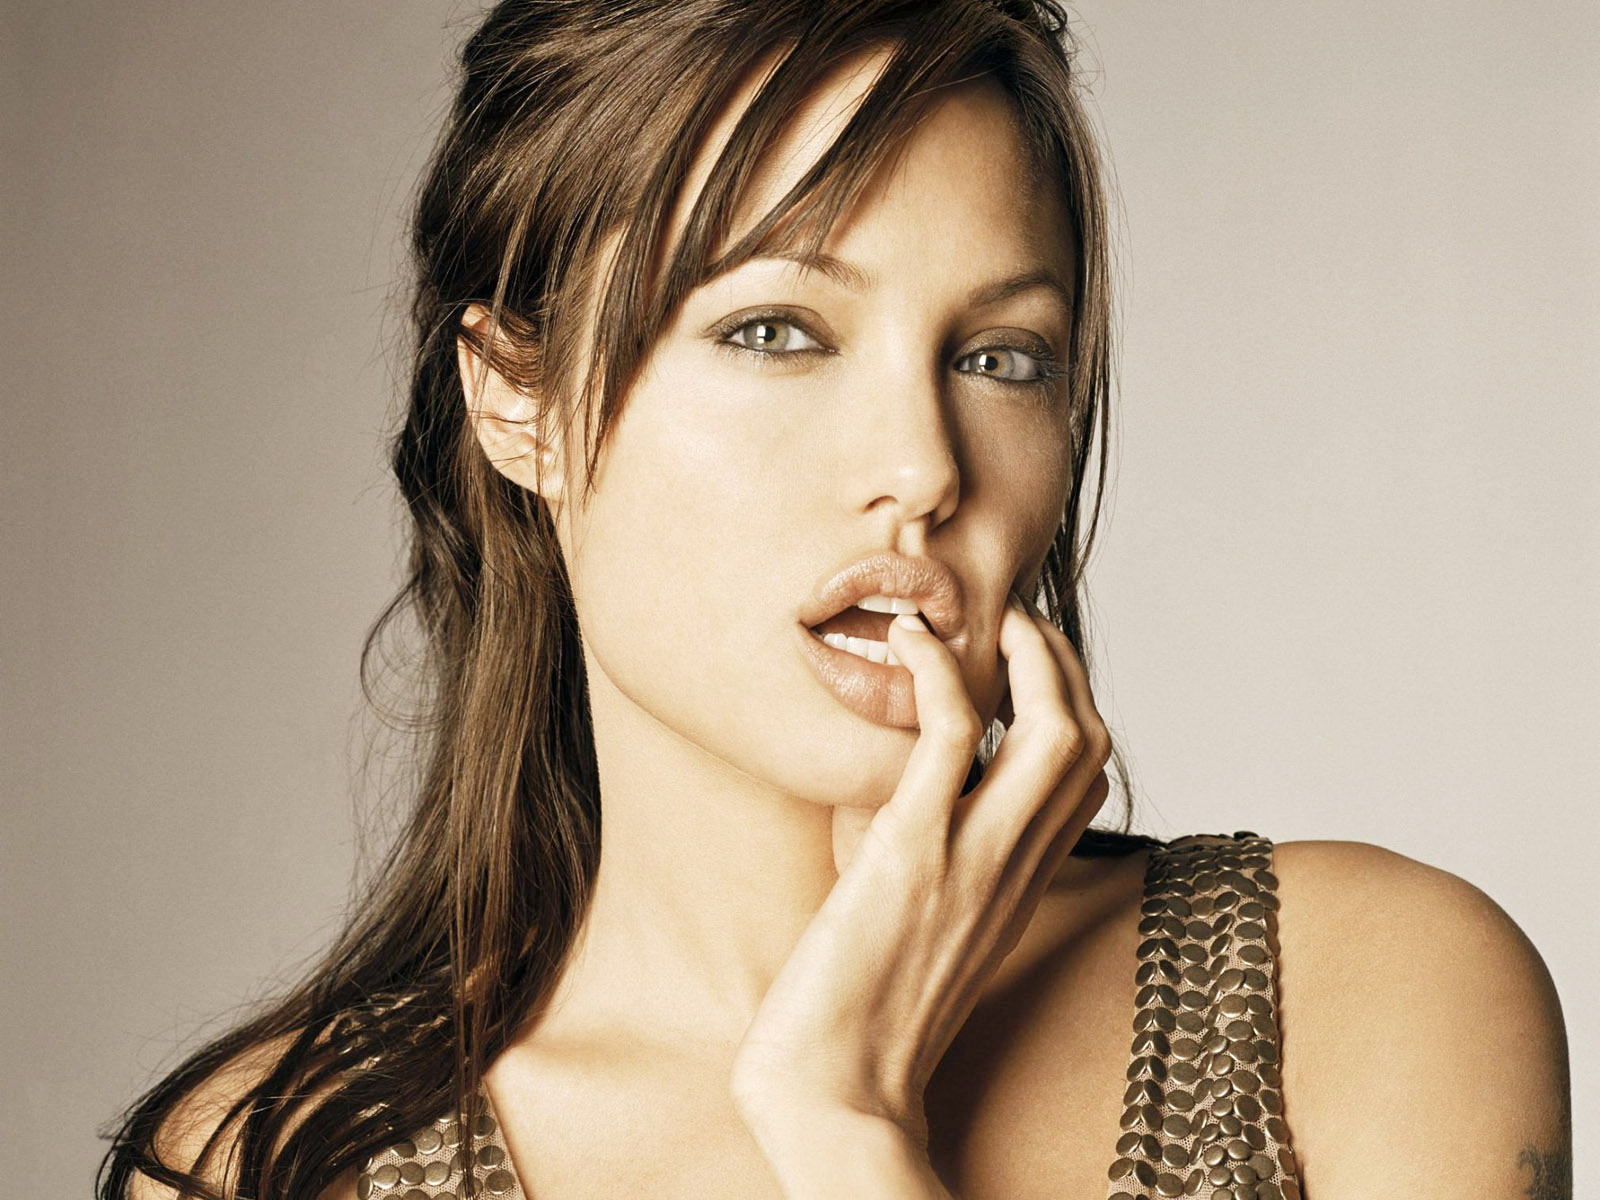 Wallpaper Collections: Angelina Jolie HD Wallpapers